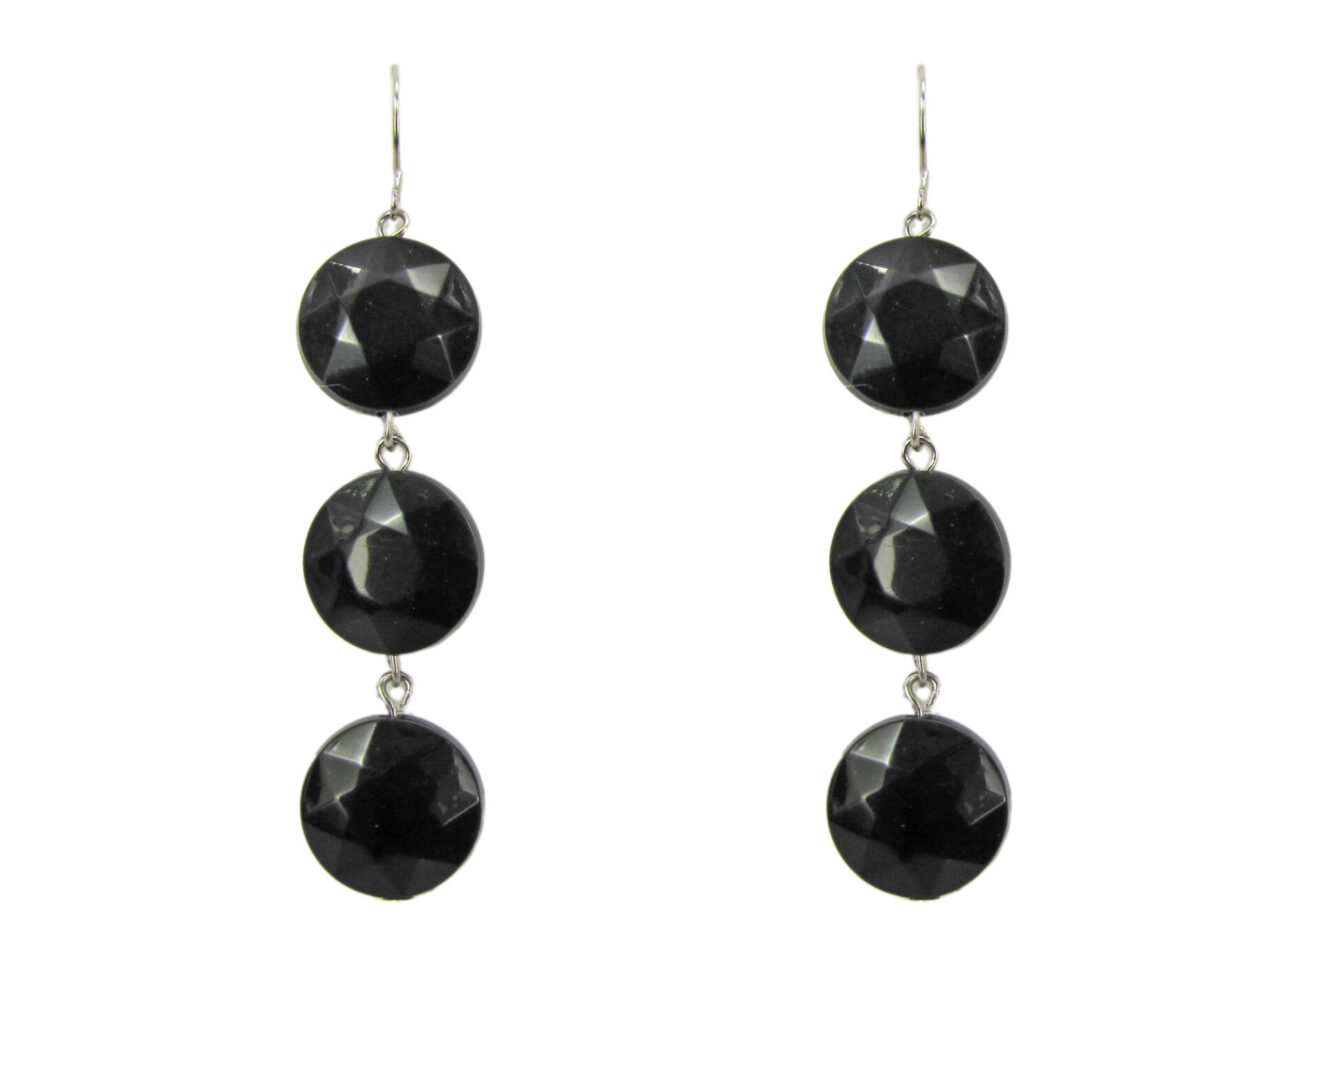 pair of earrings with three rough-cut black stones